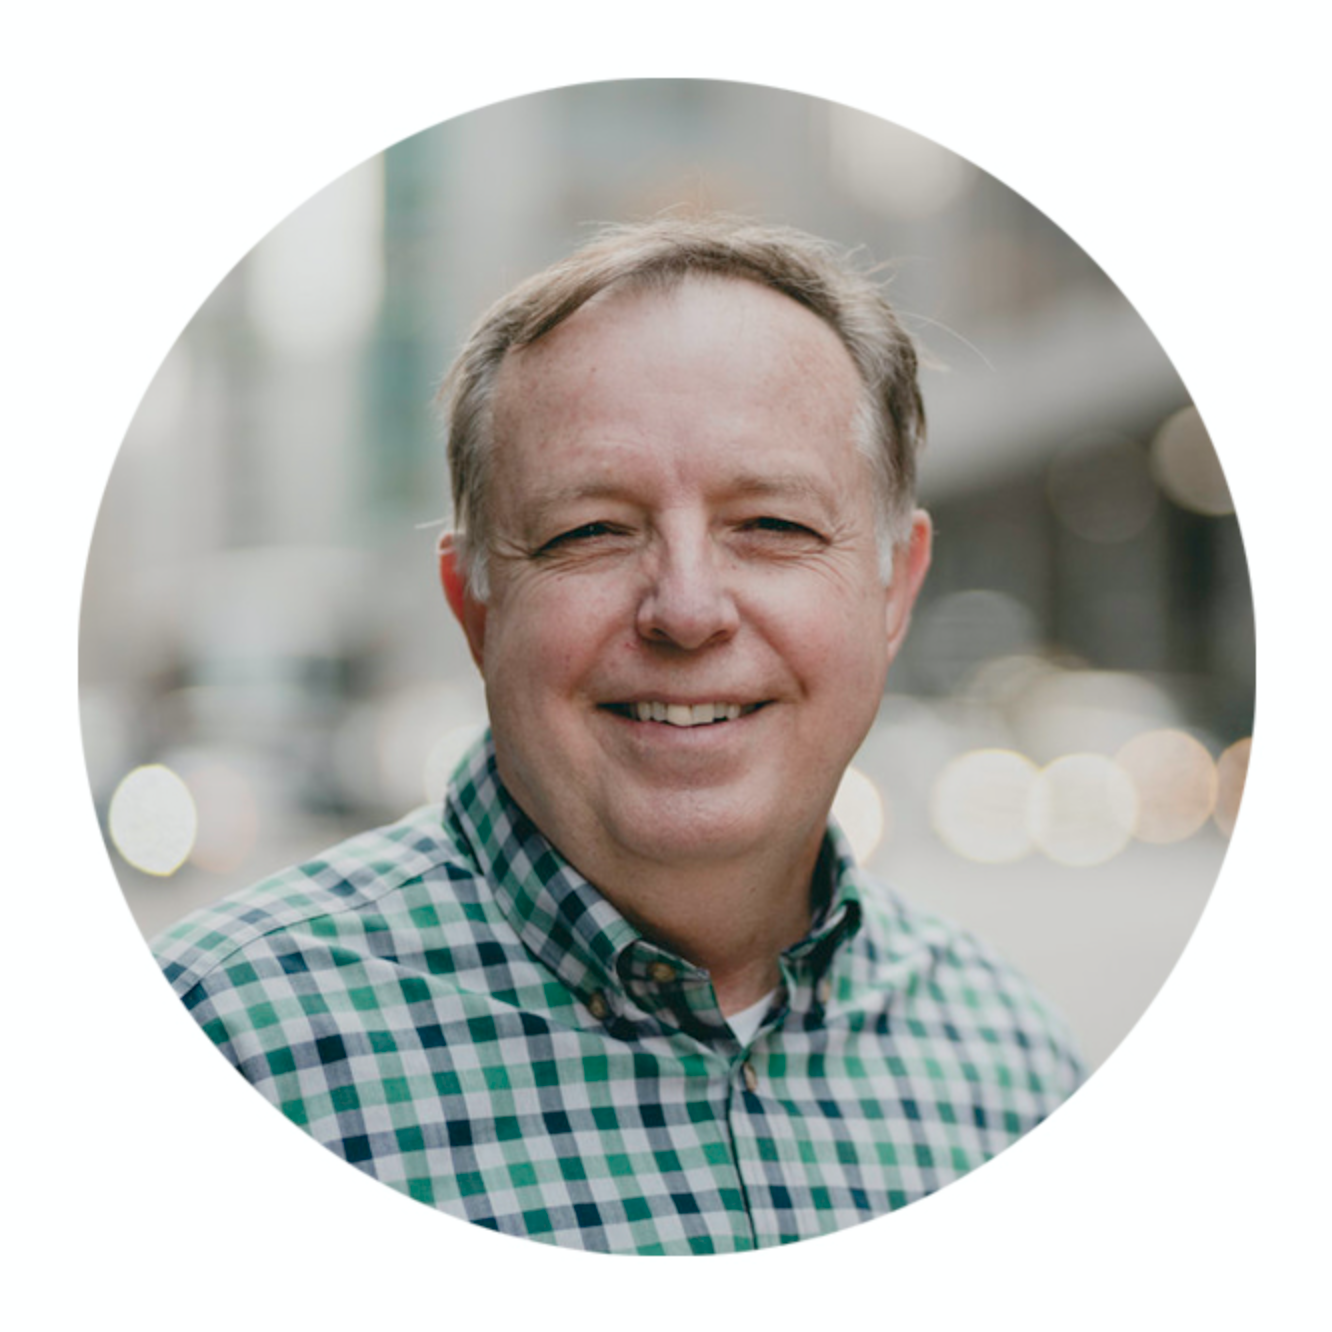 - About the AuthorDavid Whitehead brings over 37 years of ministry experience to City to City, where he has served as a Coaching Catalyst for over 16 years. David has coached a wide diversity of Christian leaders and helped establish coaching networks around the world.